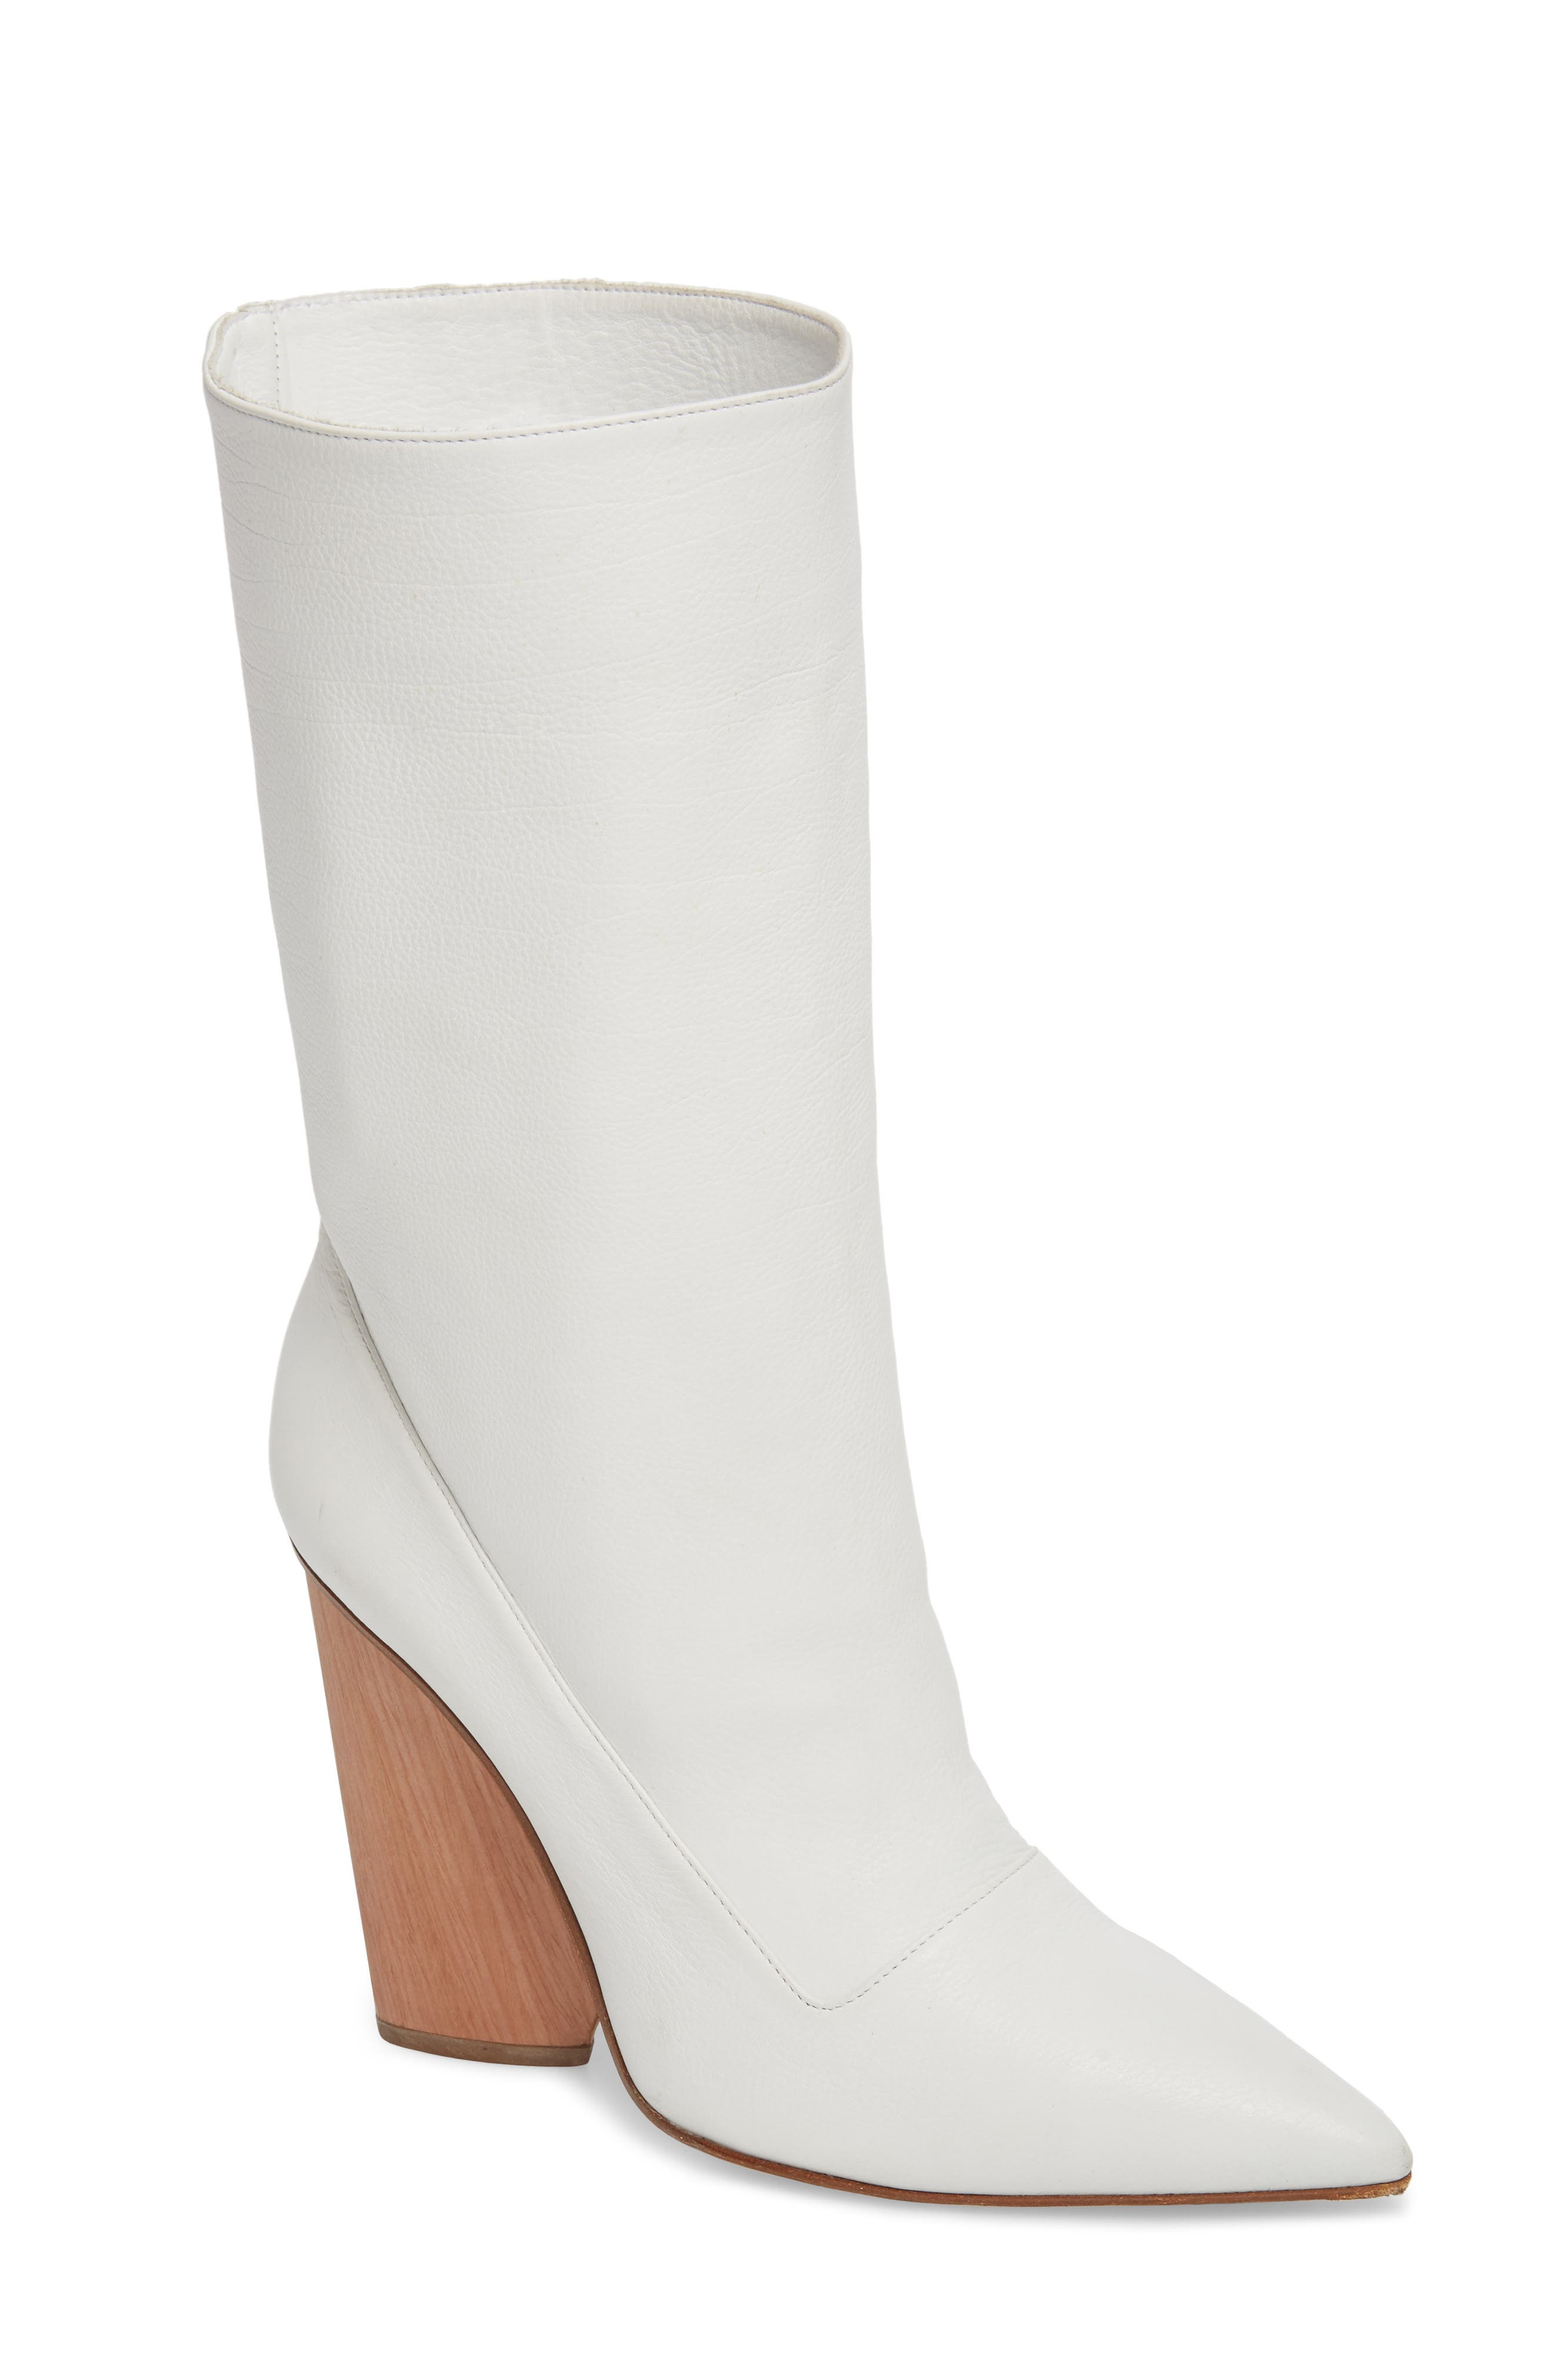 Alternate Image 1 Selected - Paul Andrew Judd Pointy Toe Boot (Women)